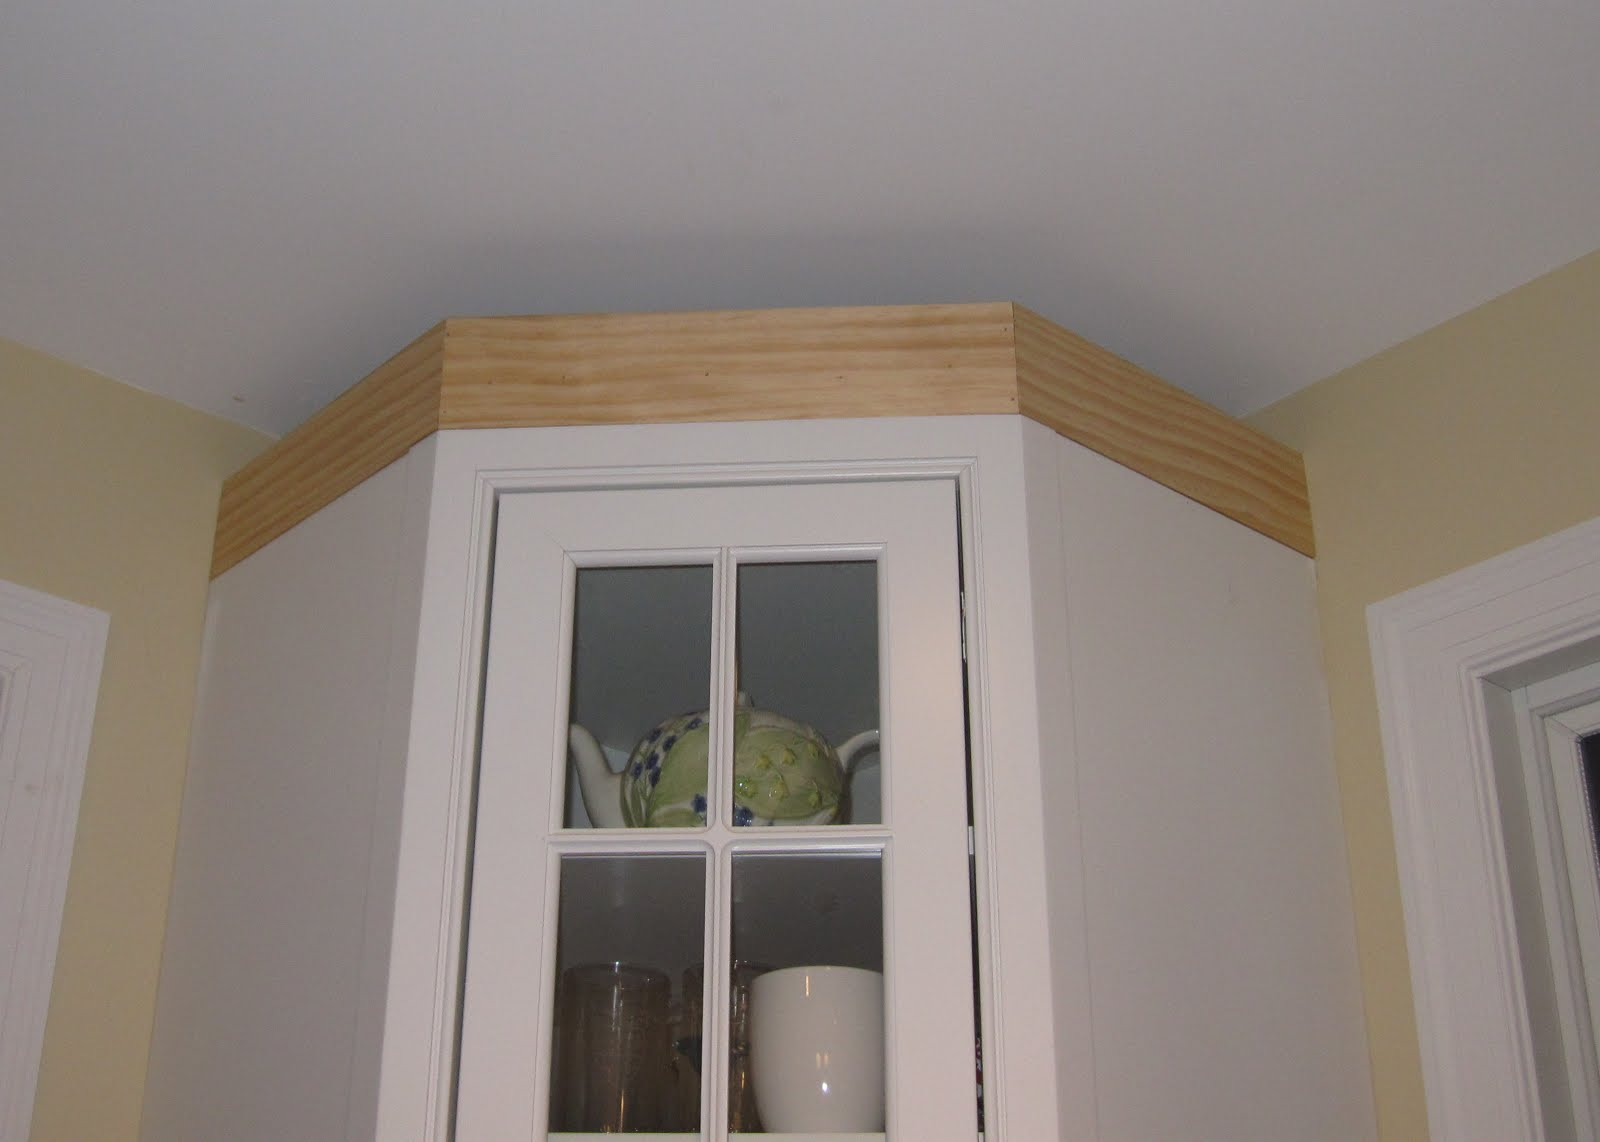 Remodelaholic | Adding Crown Molding in our Kitchen and Family Room